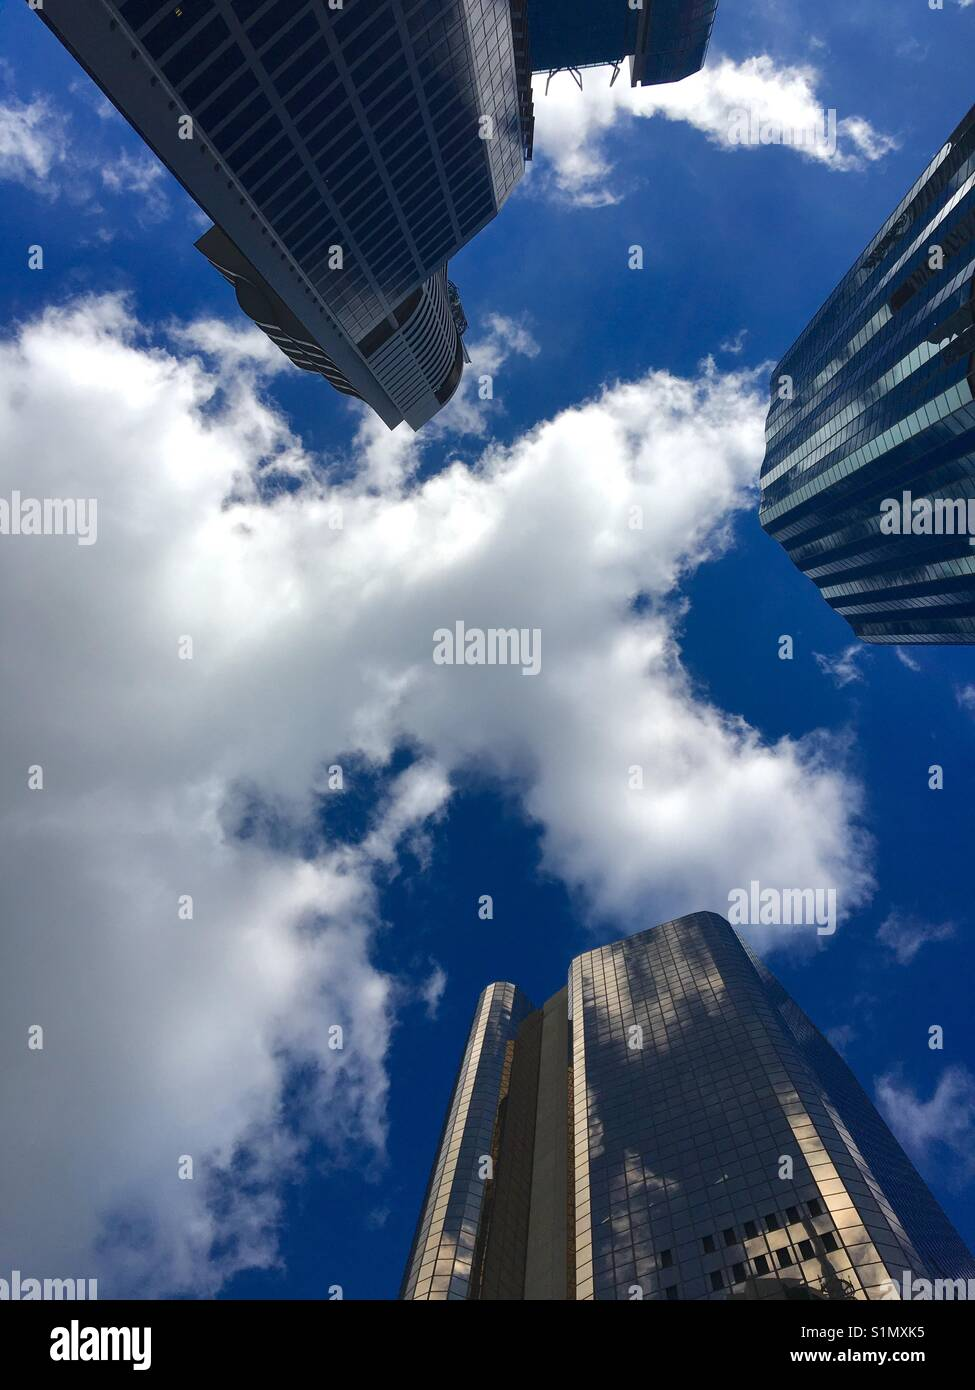 High rise skyscrapers in central business district of Brisbane Australia - Stock Image